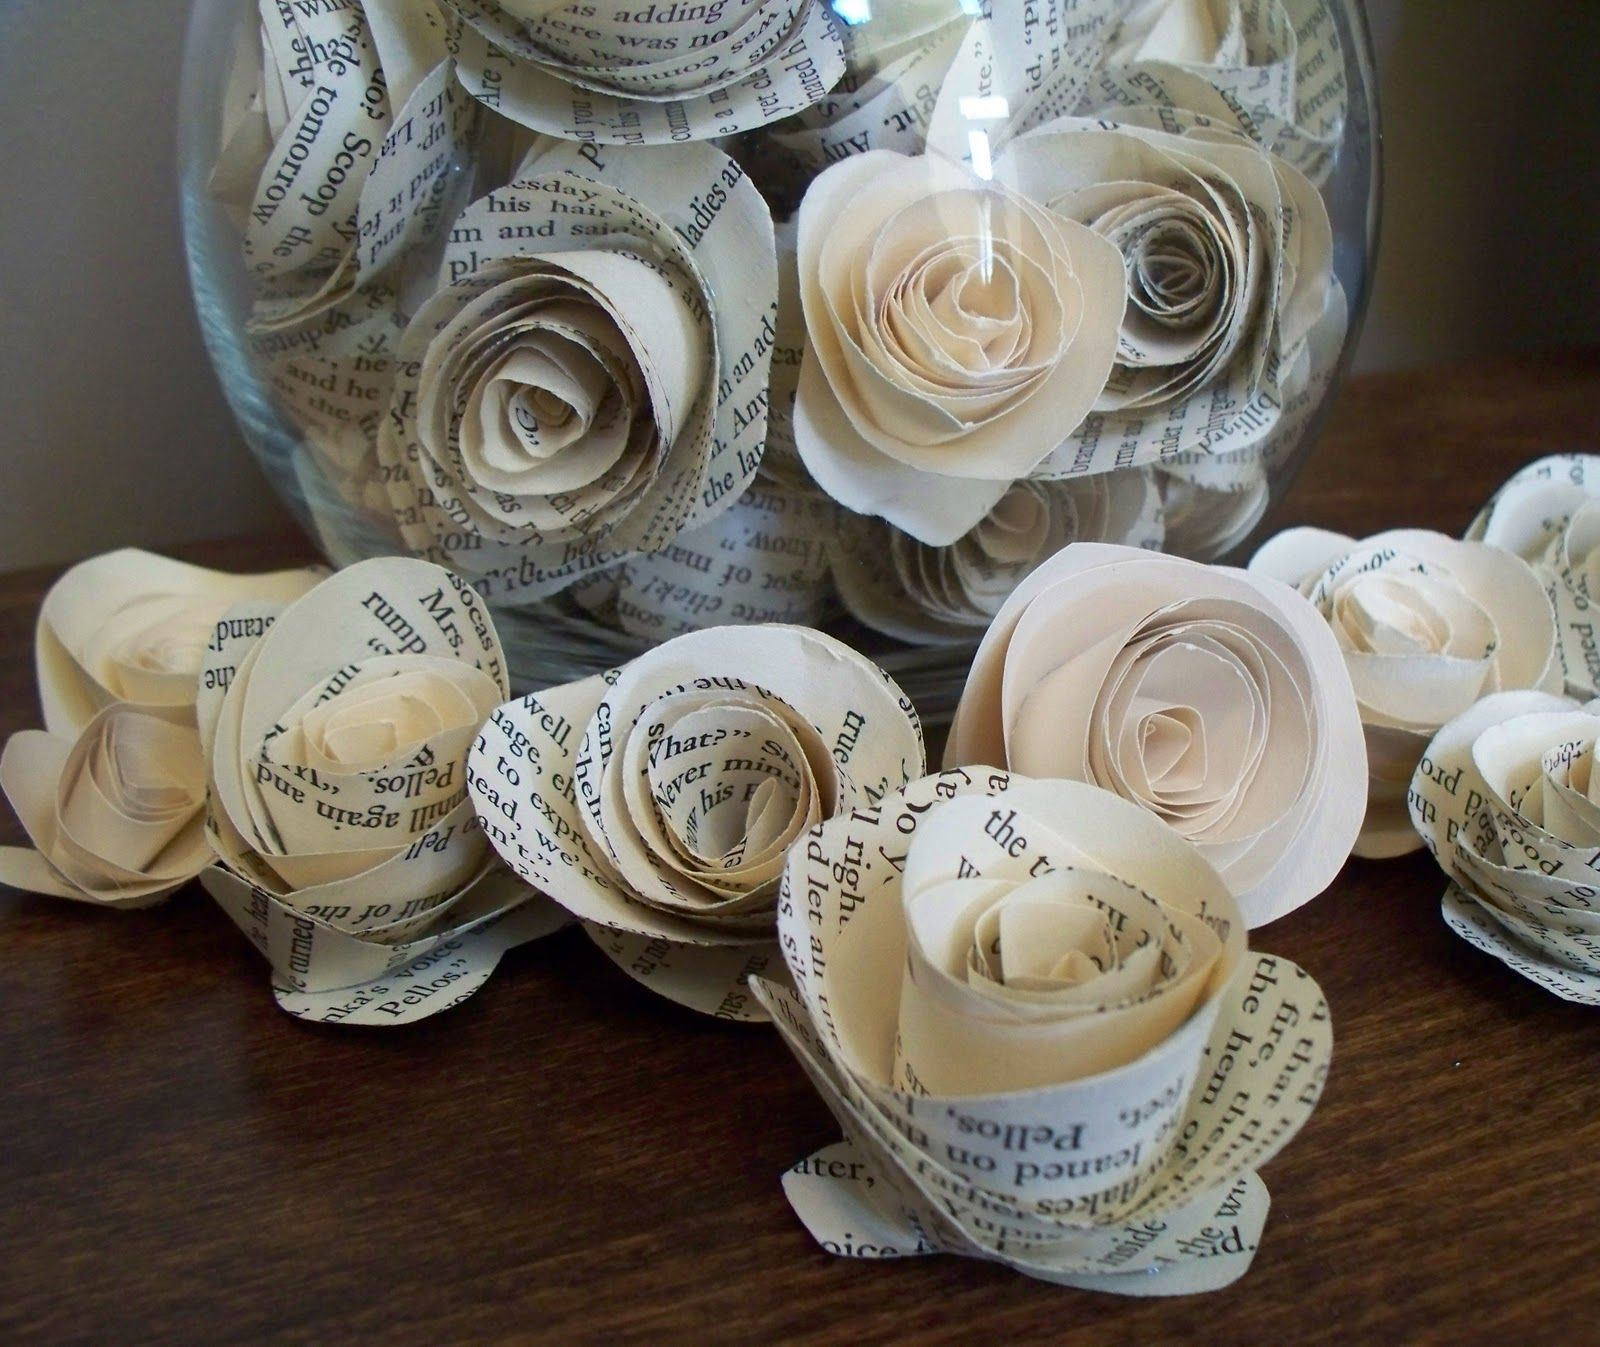 Smart ideas for a book themed bridal shower pinterest themed create paper flowers with old or damaged book pages smart ideas for a book themed bridal shower krista sew inspired myweddingfavors mightylinksfo